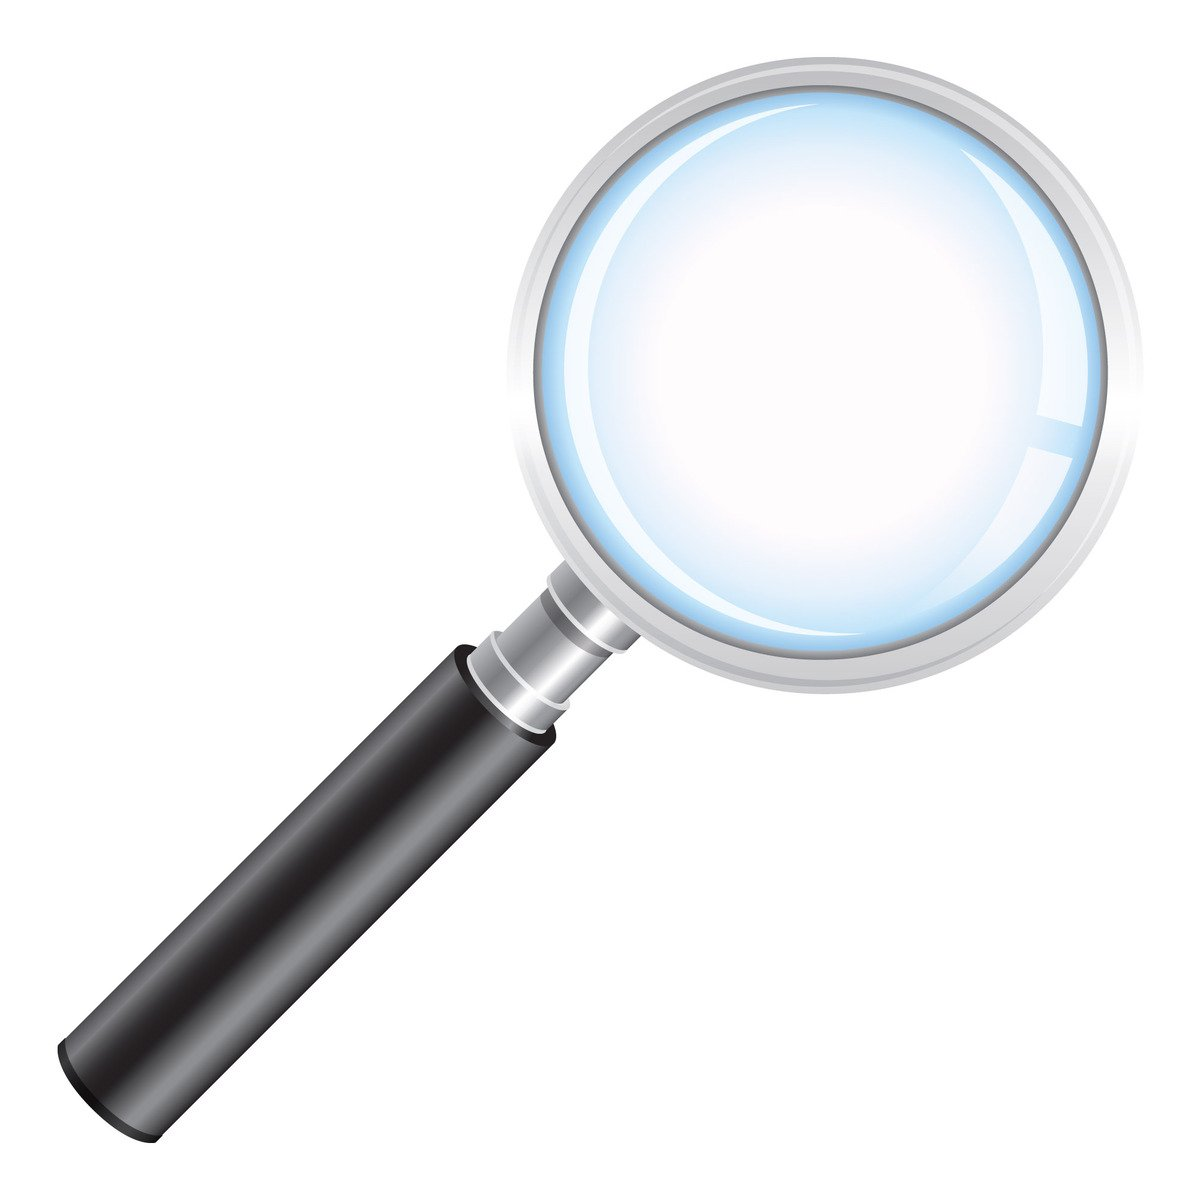 1200x1200 Free Magnifying Glass Stock Photo